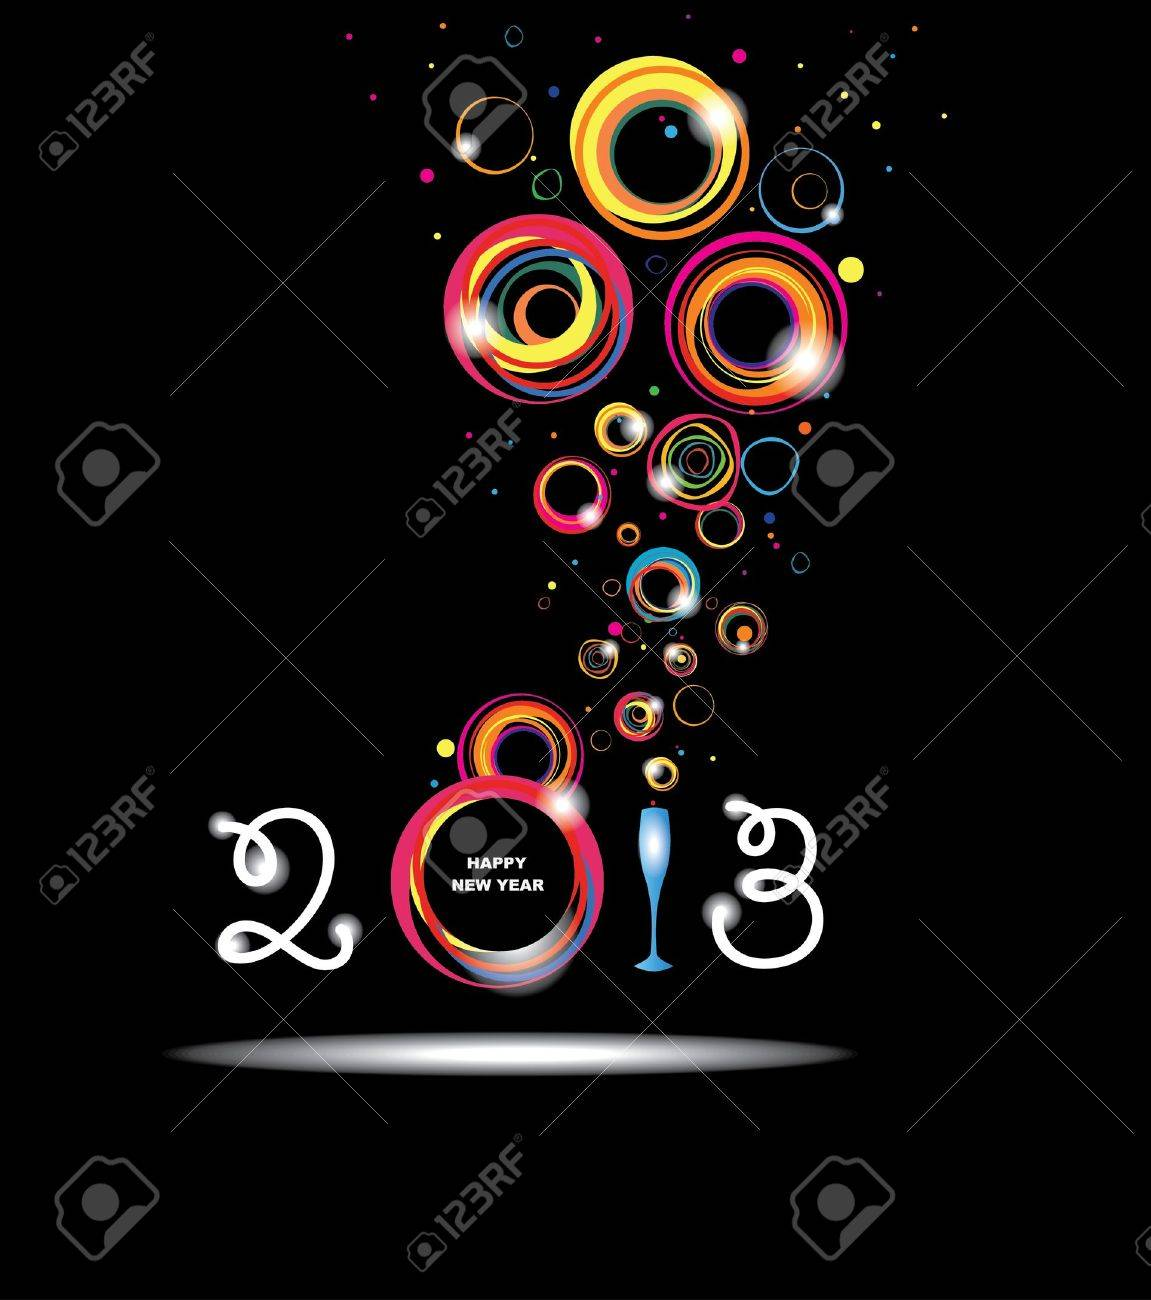 New year 2013 in black background  Abstract poster Stock Vector - 16465427